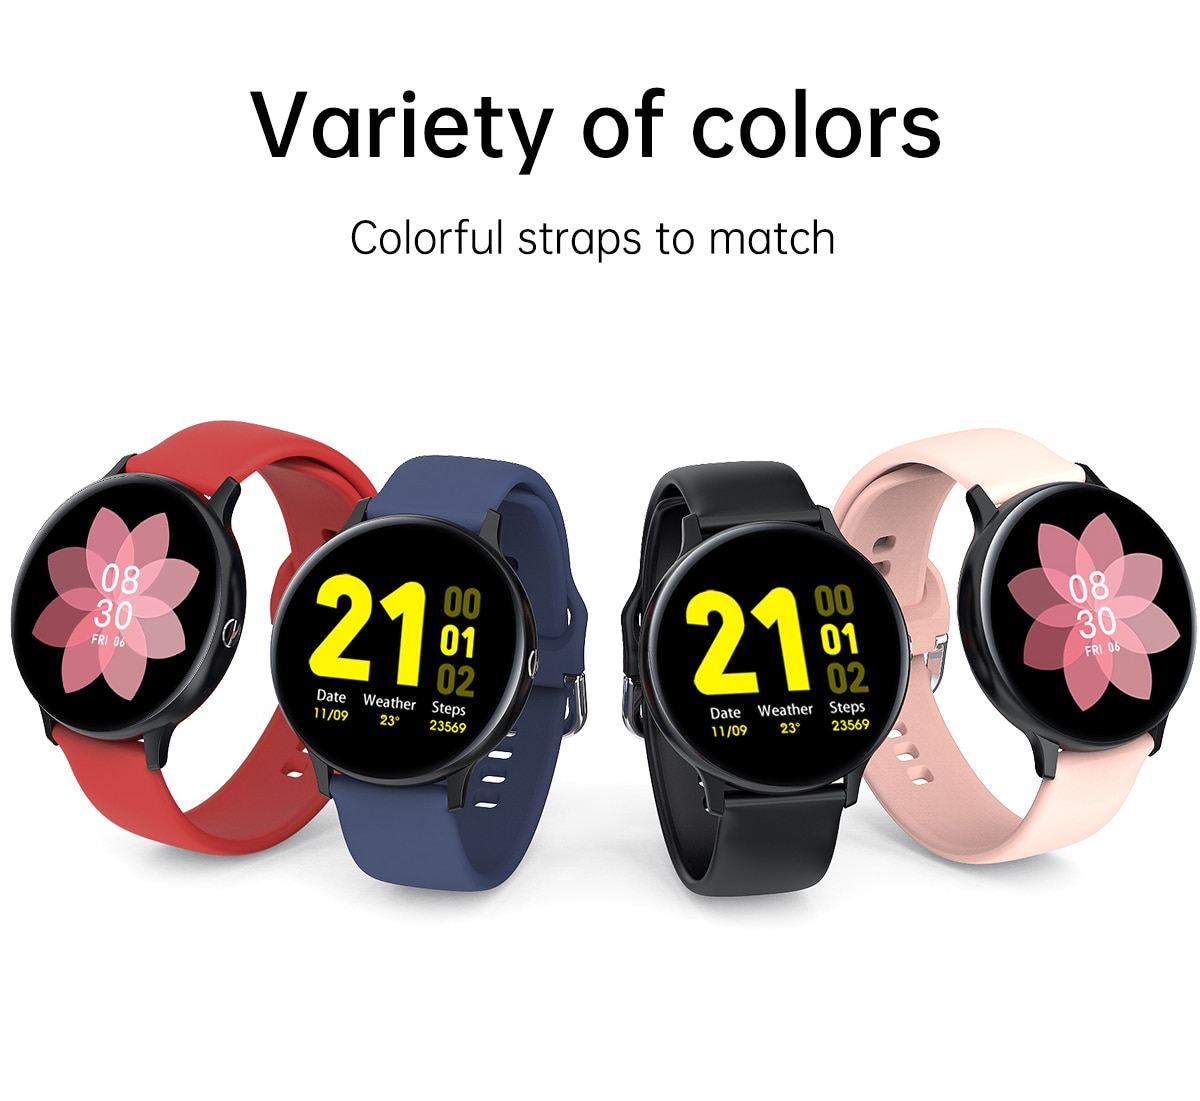 Hae7880d85b6b4b12ab160f3576266b4bc - LIGE 2021 Bluetooth Answer Call Smart Watch Men Full Touch Dial Call Fitness Tracker IP67 Waterproof 4G ROM Smartwatch for women